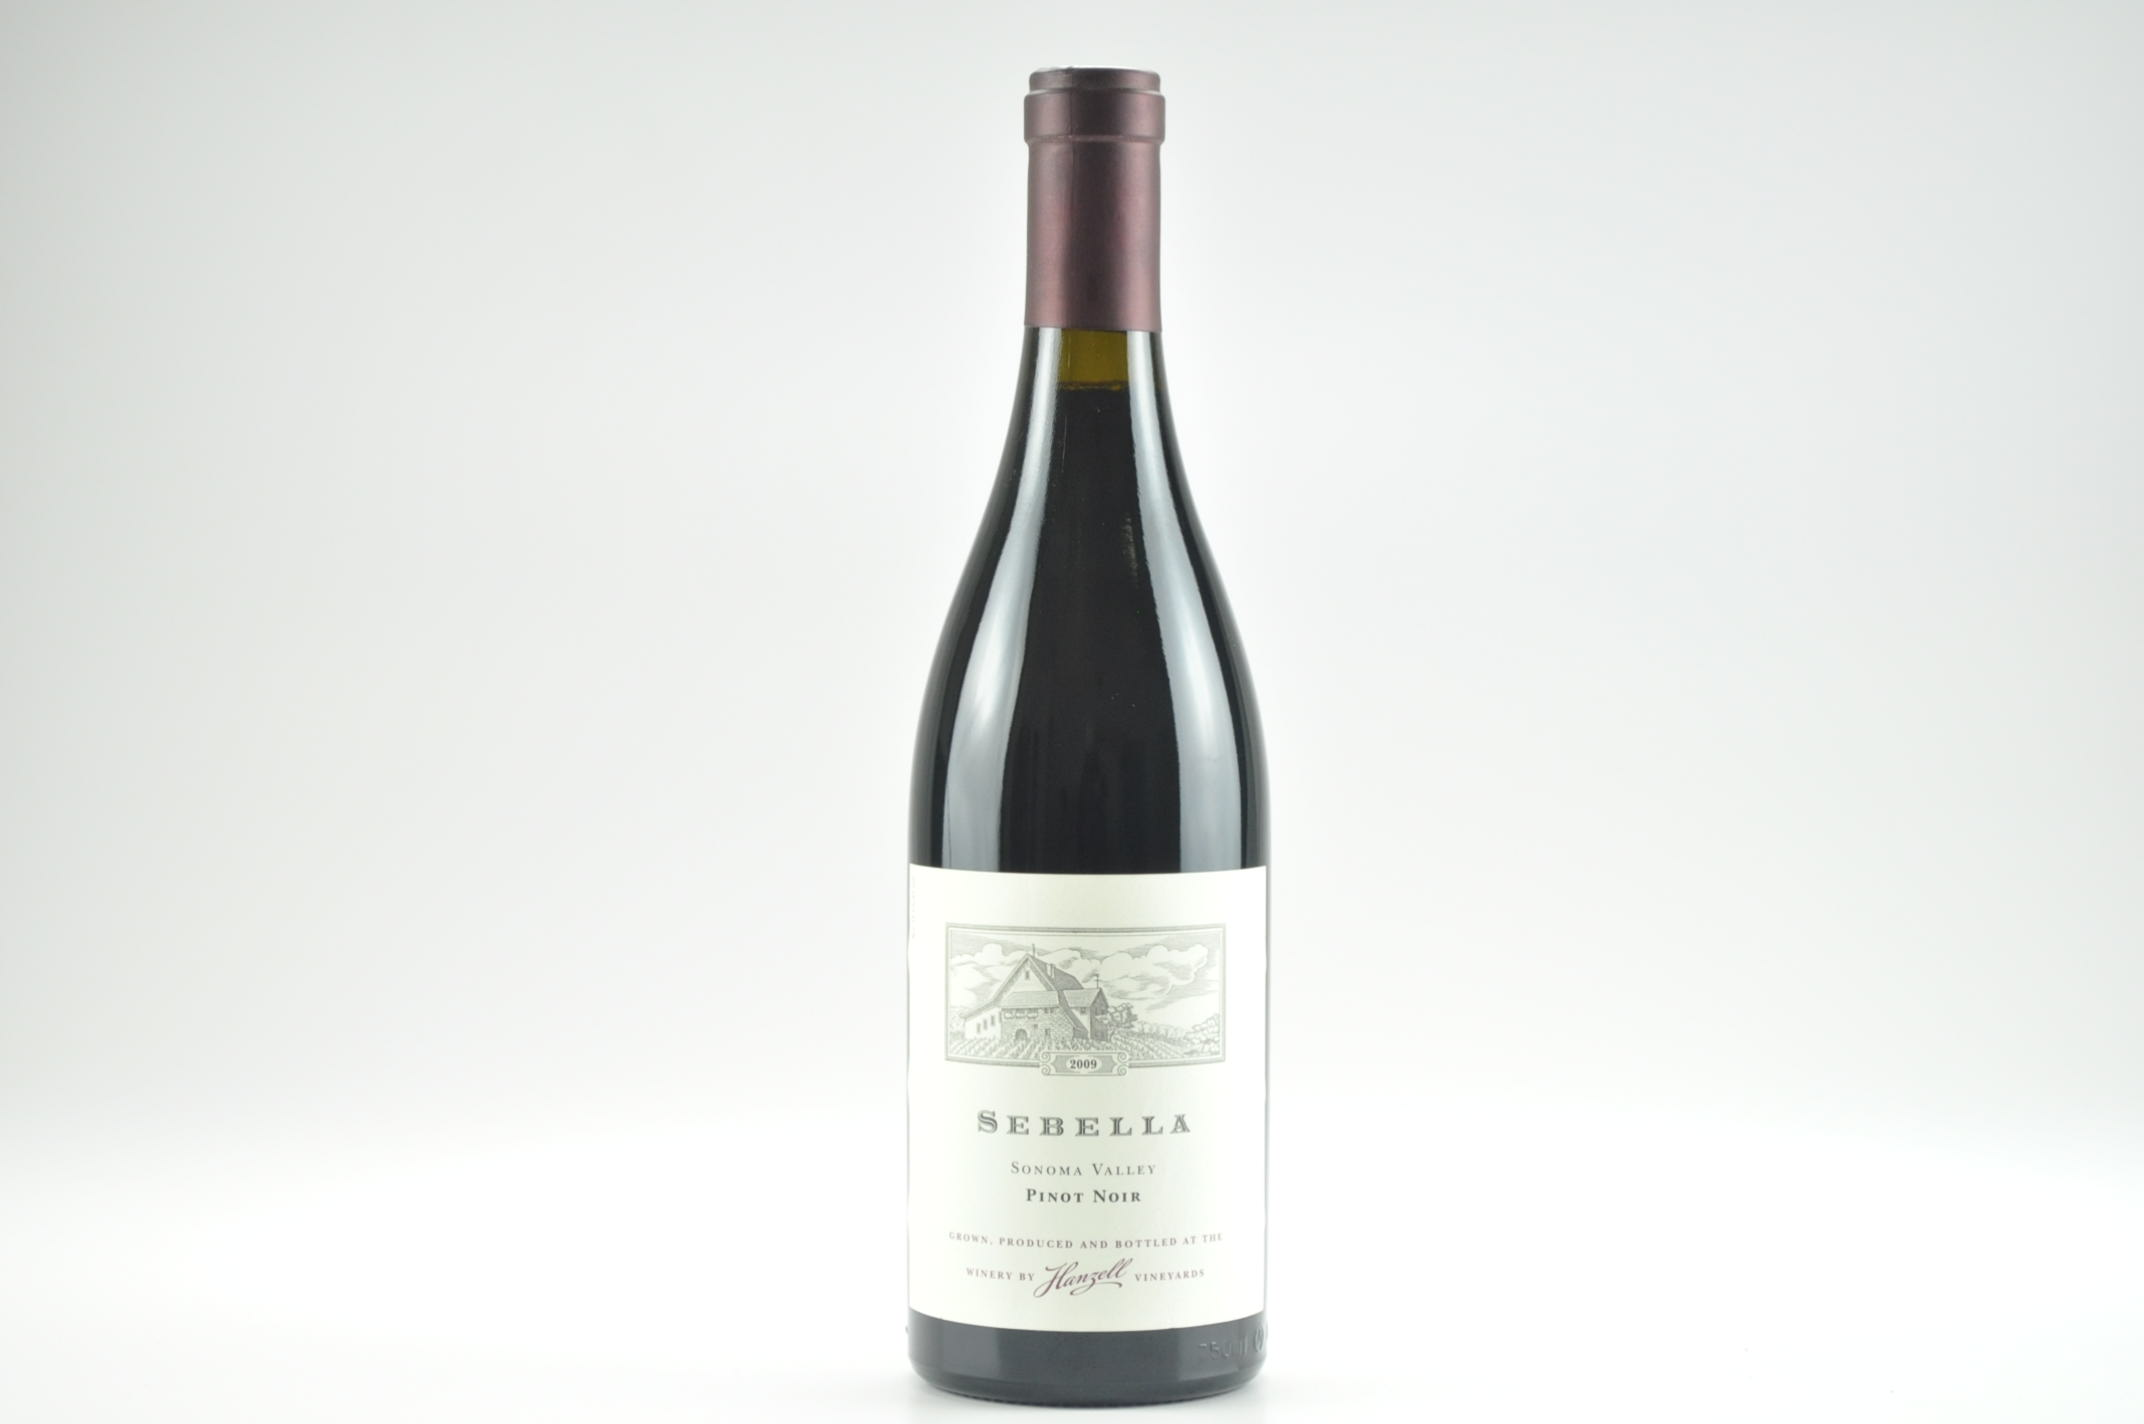 2009 Hanzell Vineyards Sebella Pinot Noir, Sonoma Valley